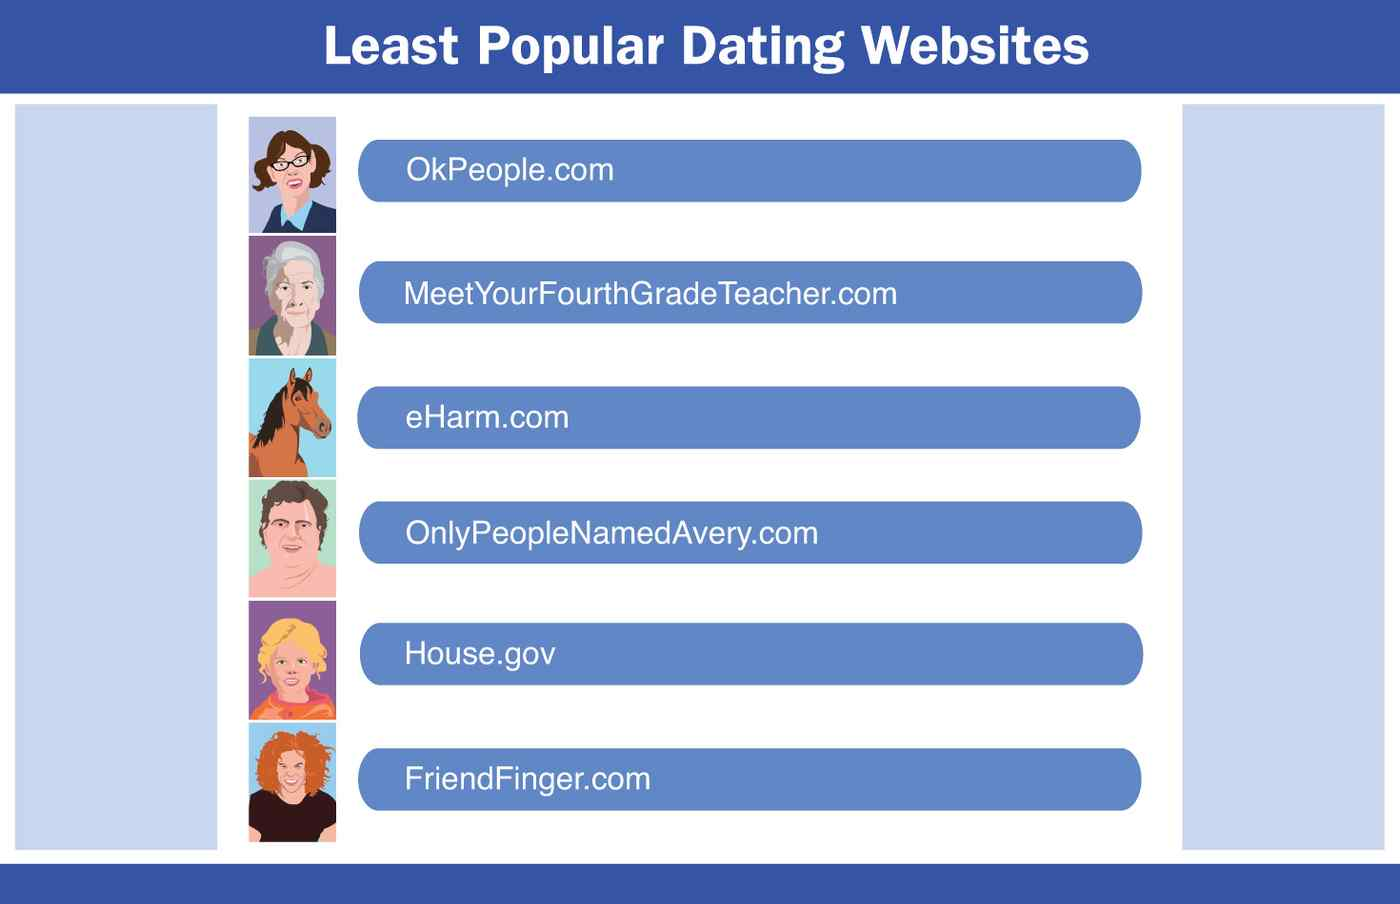 dating sites visited Reviews of the top 10 senior dating websites of 2018 welcome to our reviews of the best senior dating websites of 2018check out our top 10 list below and follow our links to read our full in-depth review of each senior dating website, alongside which you'll find costs and features lists, user reviews and videos to help you make the right choice.